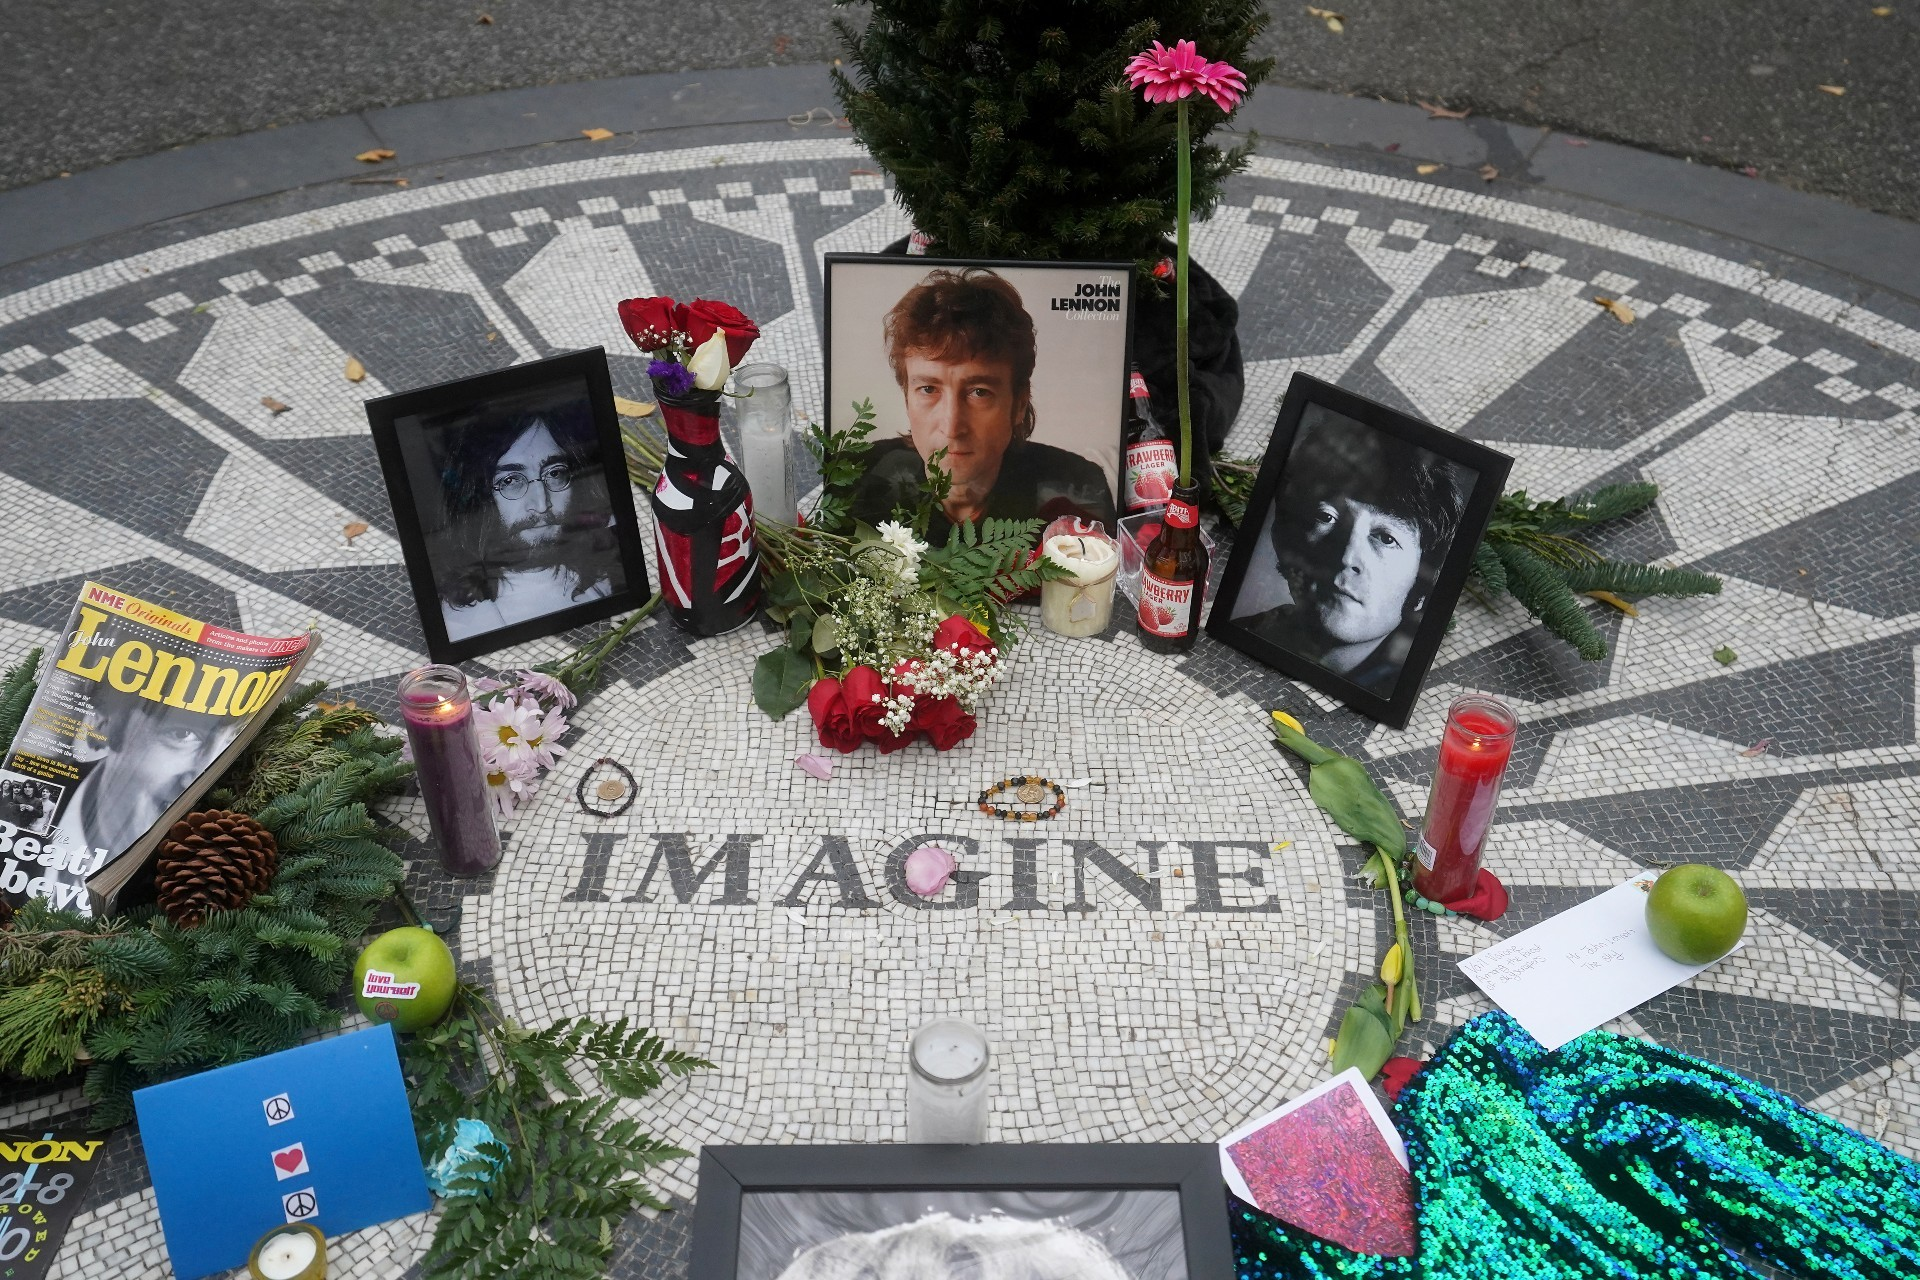 The memorial at Strawberry Fields in Central Park in New York.